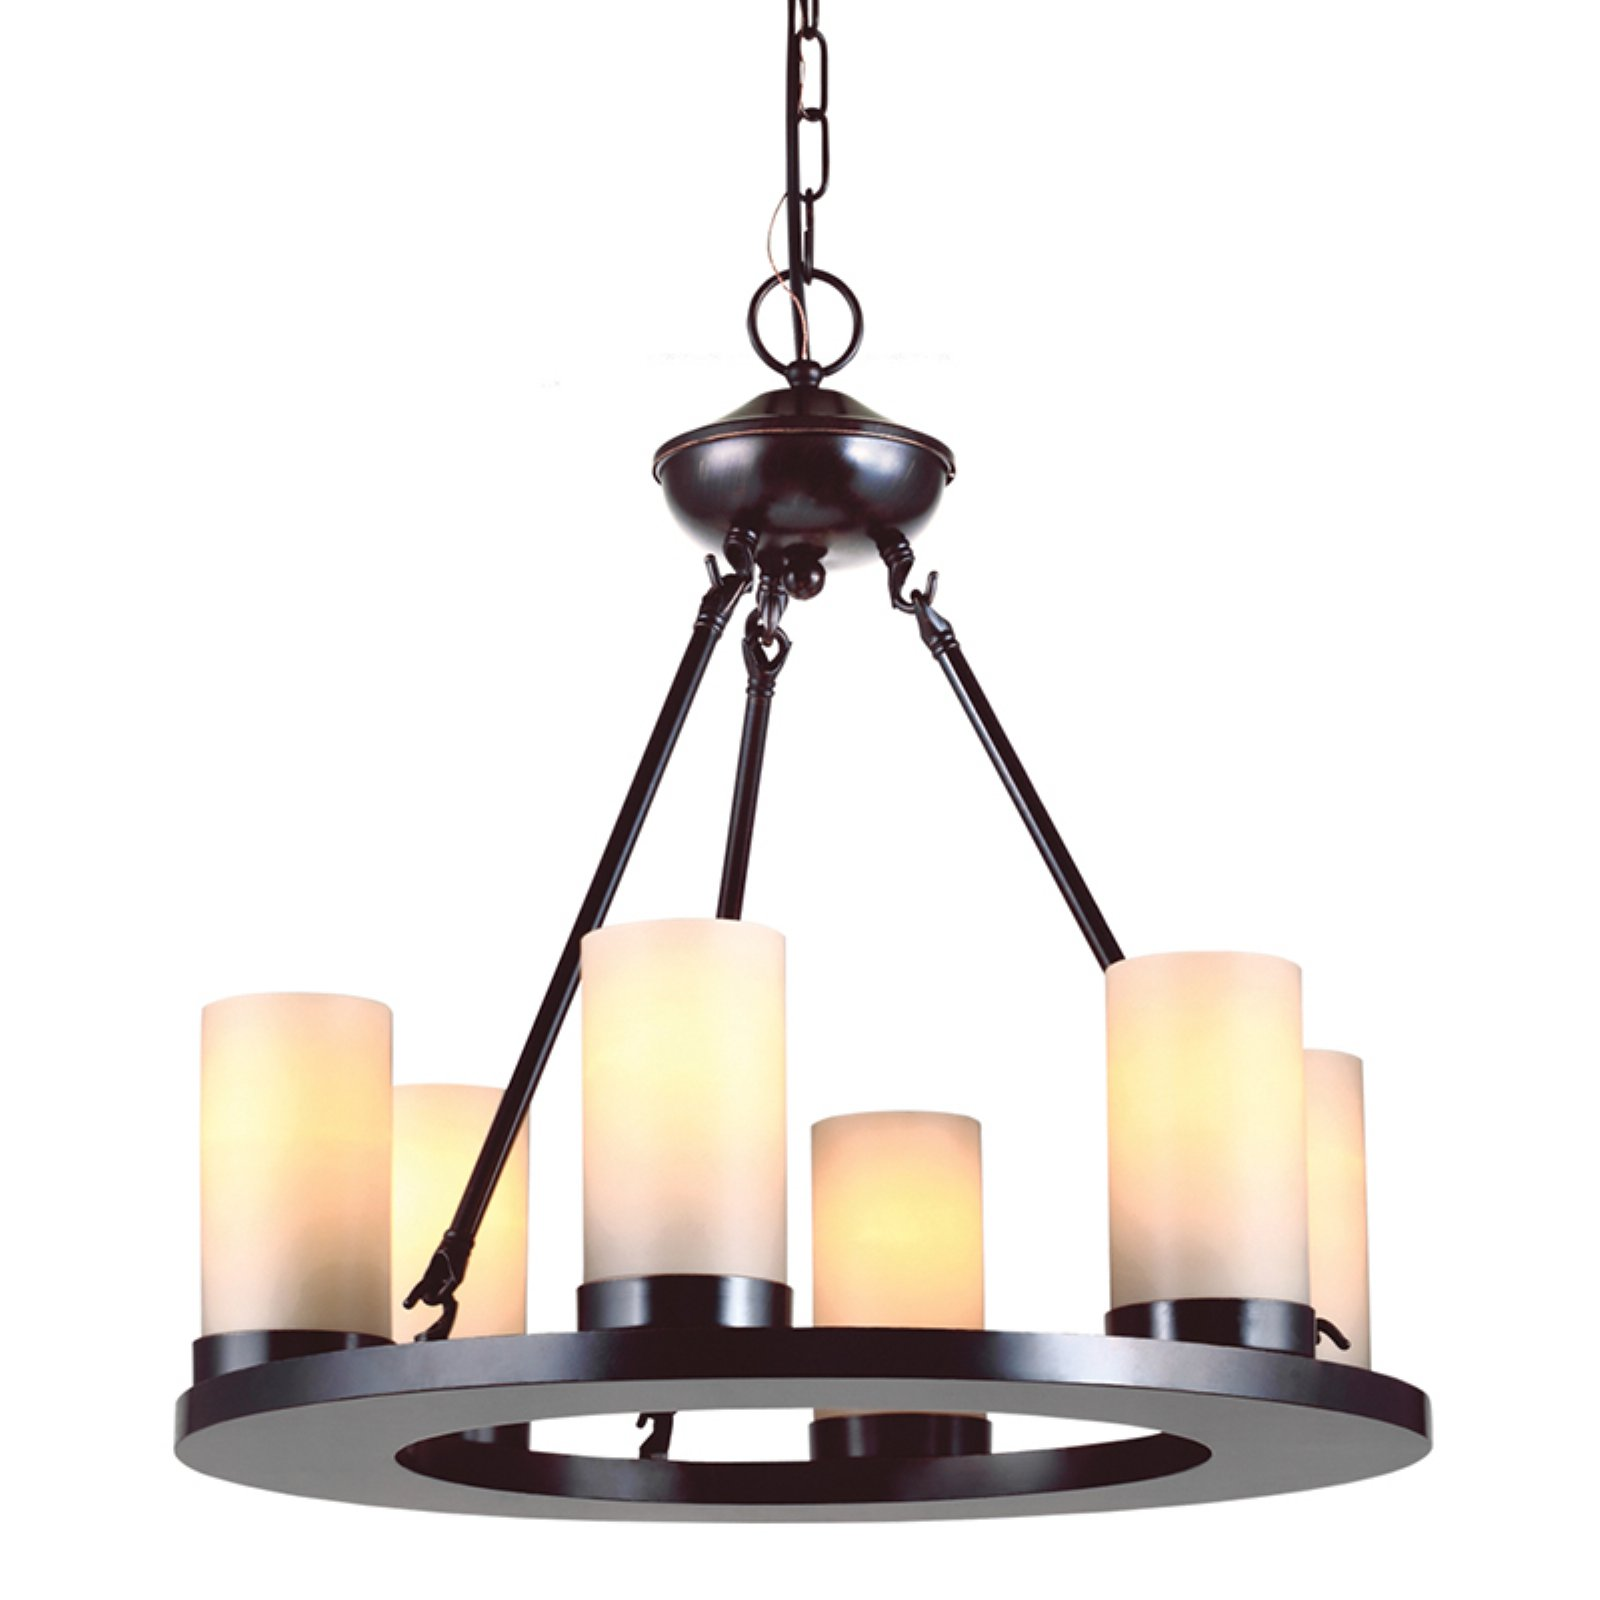 Sea Gull Lighting Ellington 6 Light Round Chandelier 21w In Burnt Sienna Candle Chandelier